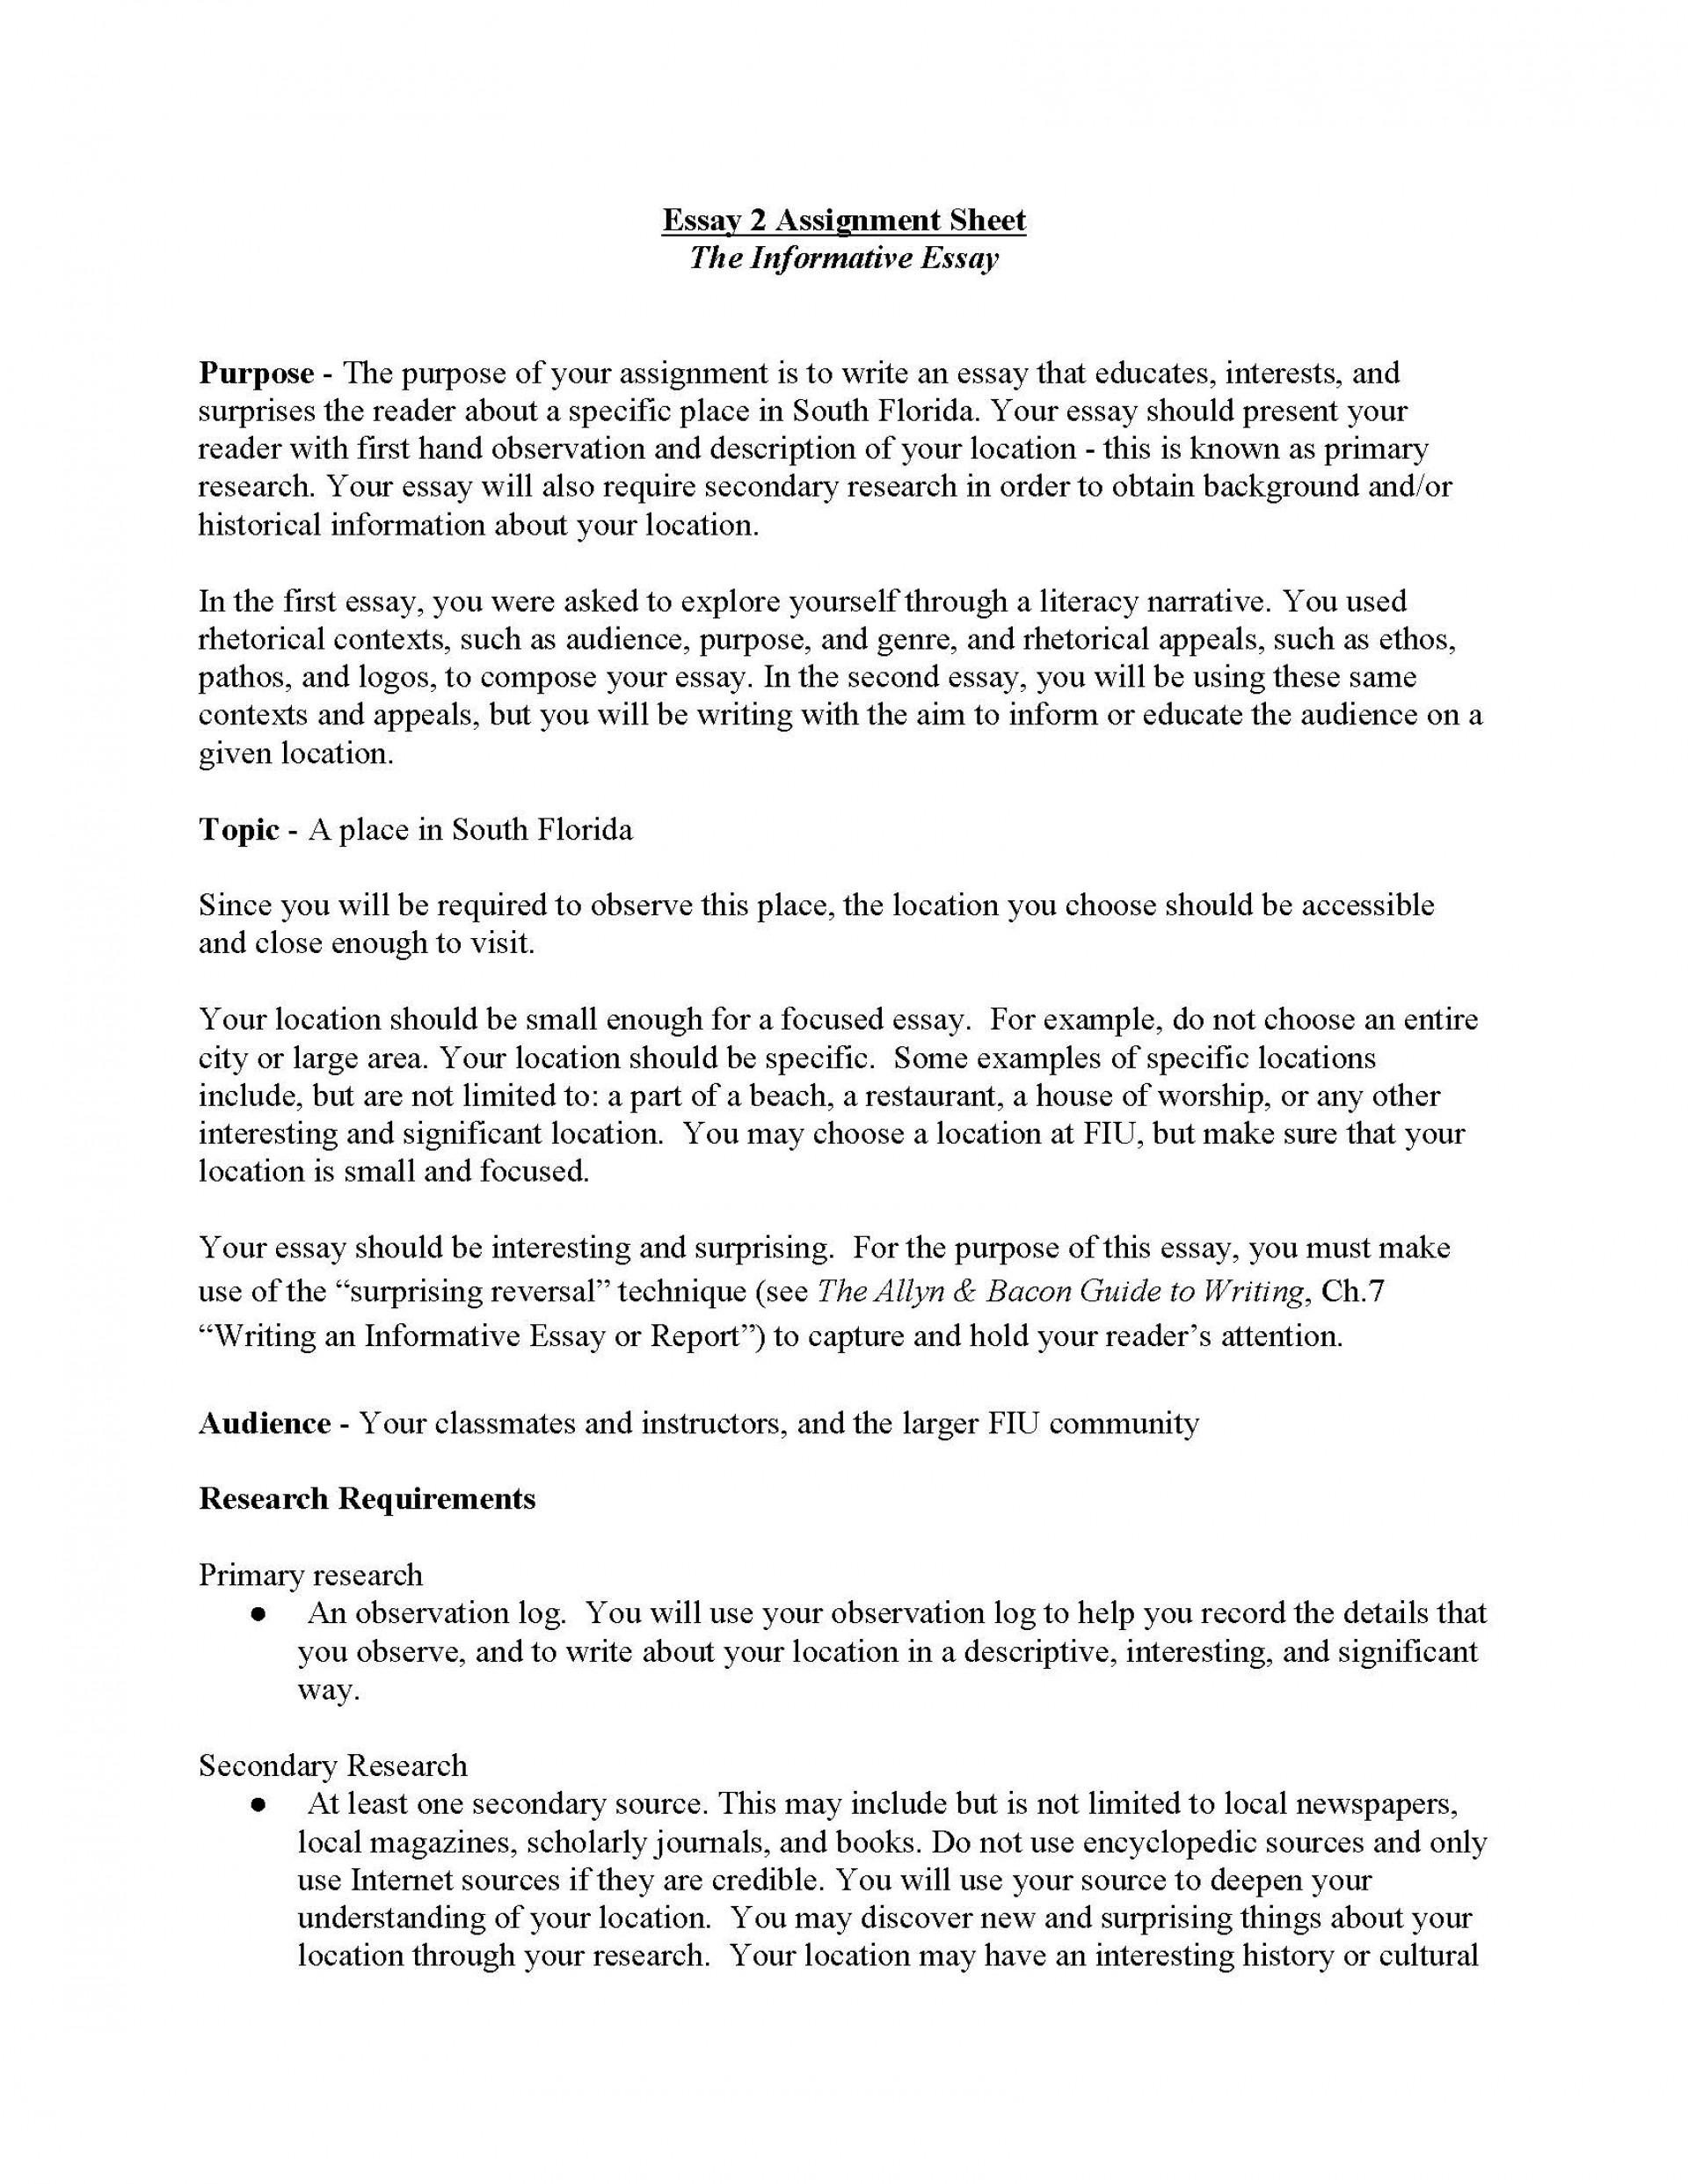 002 Essay Example Informative Topics Unit Assignment Page 1 Remarkable 2018 Prompts For High School Prompt 4th Grade 1920